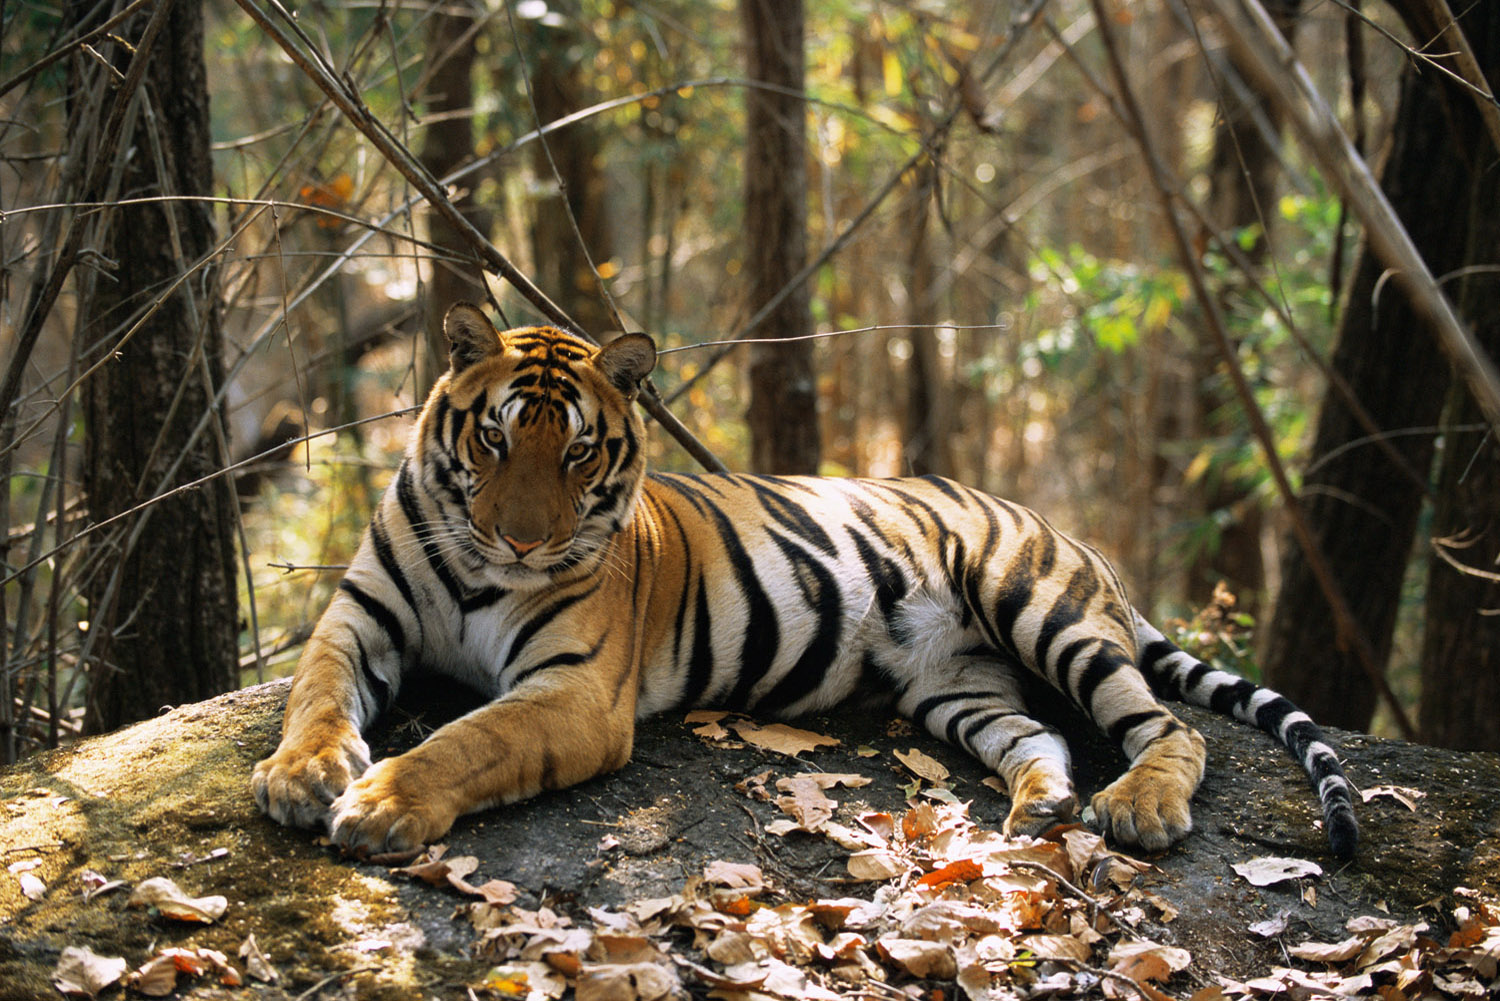 Bengal tiger resting on rock, Kanha National Park, Madhya Pradesh, India